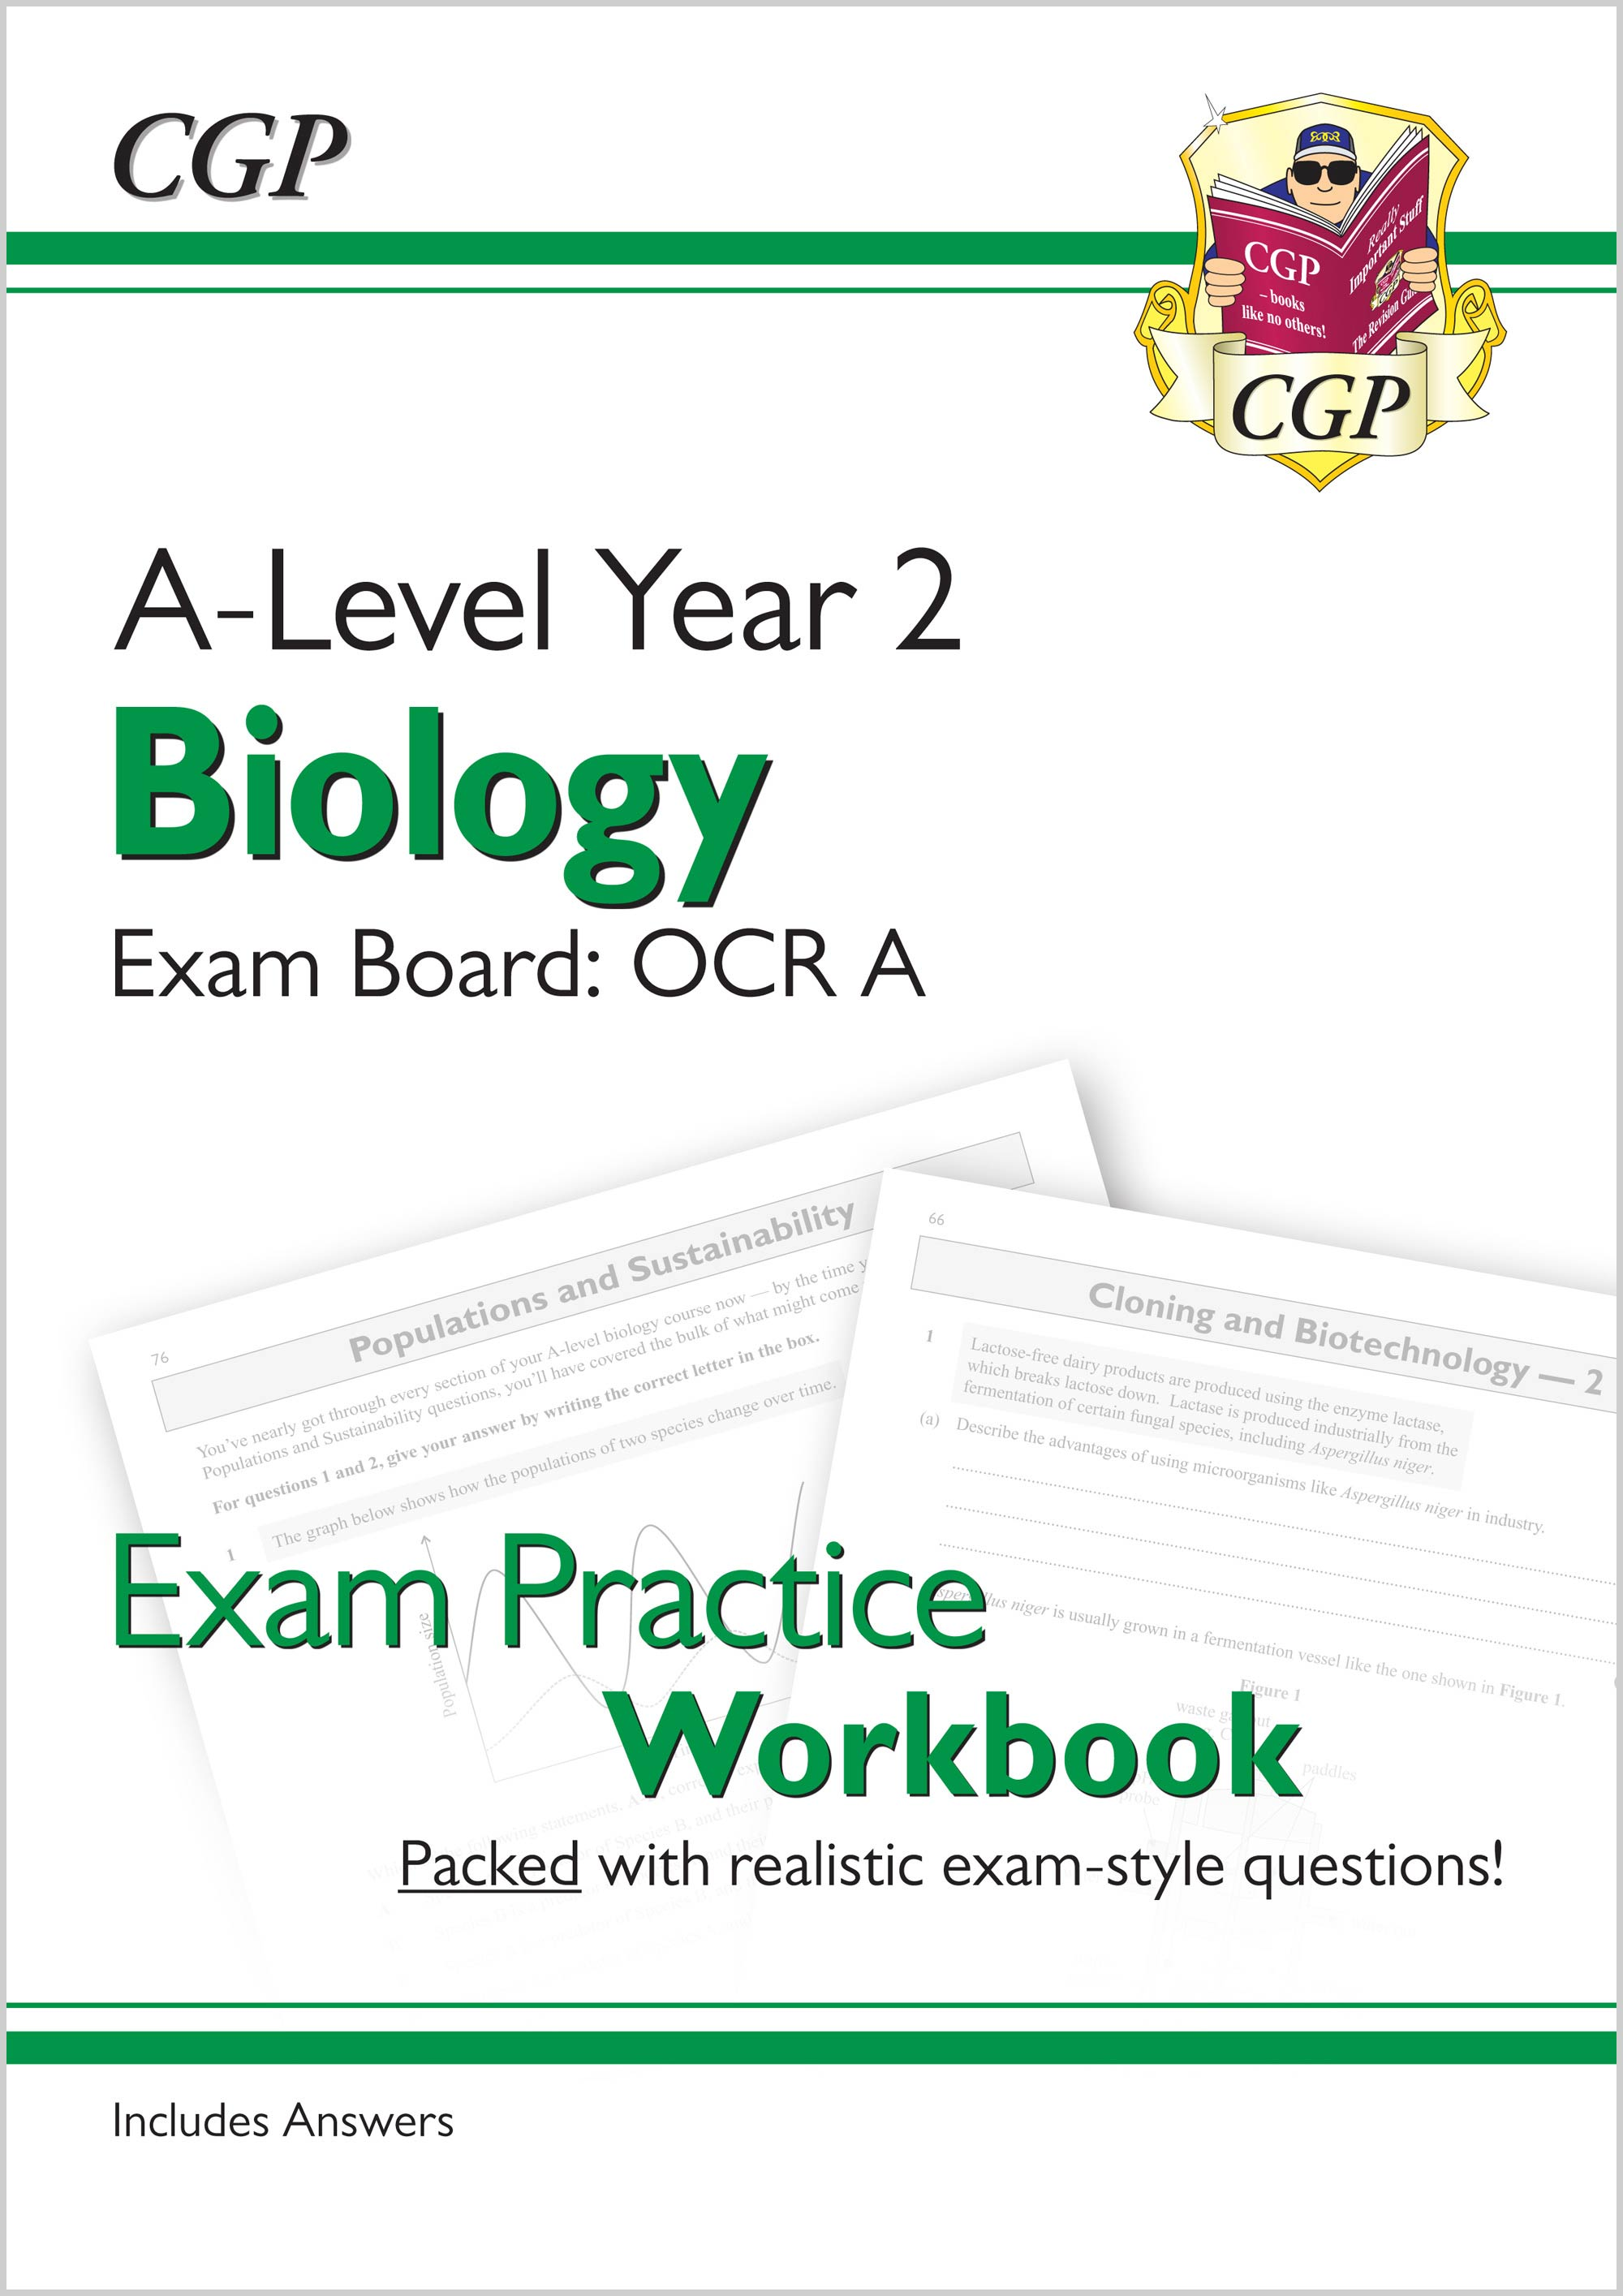 BRAQ61 - New A-Level Biology for 2018: OCR A Year 2 Exam Practice Workbook - includes Answers